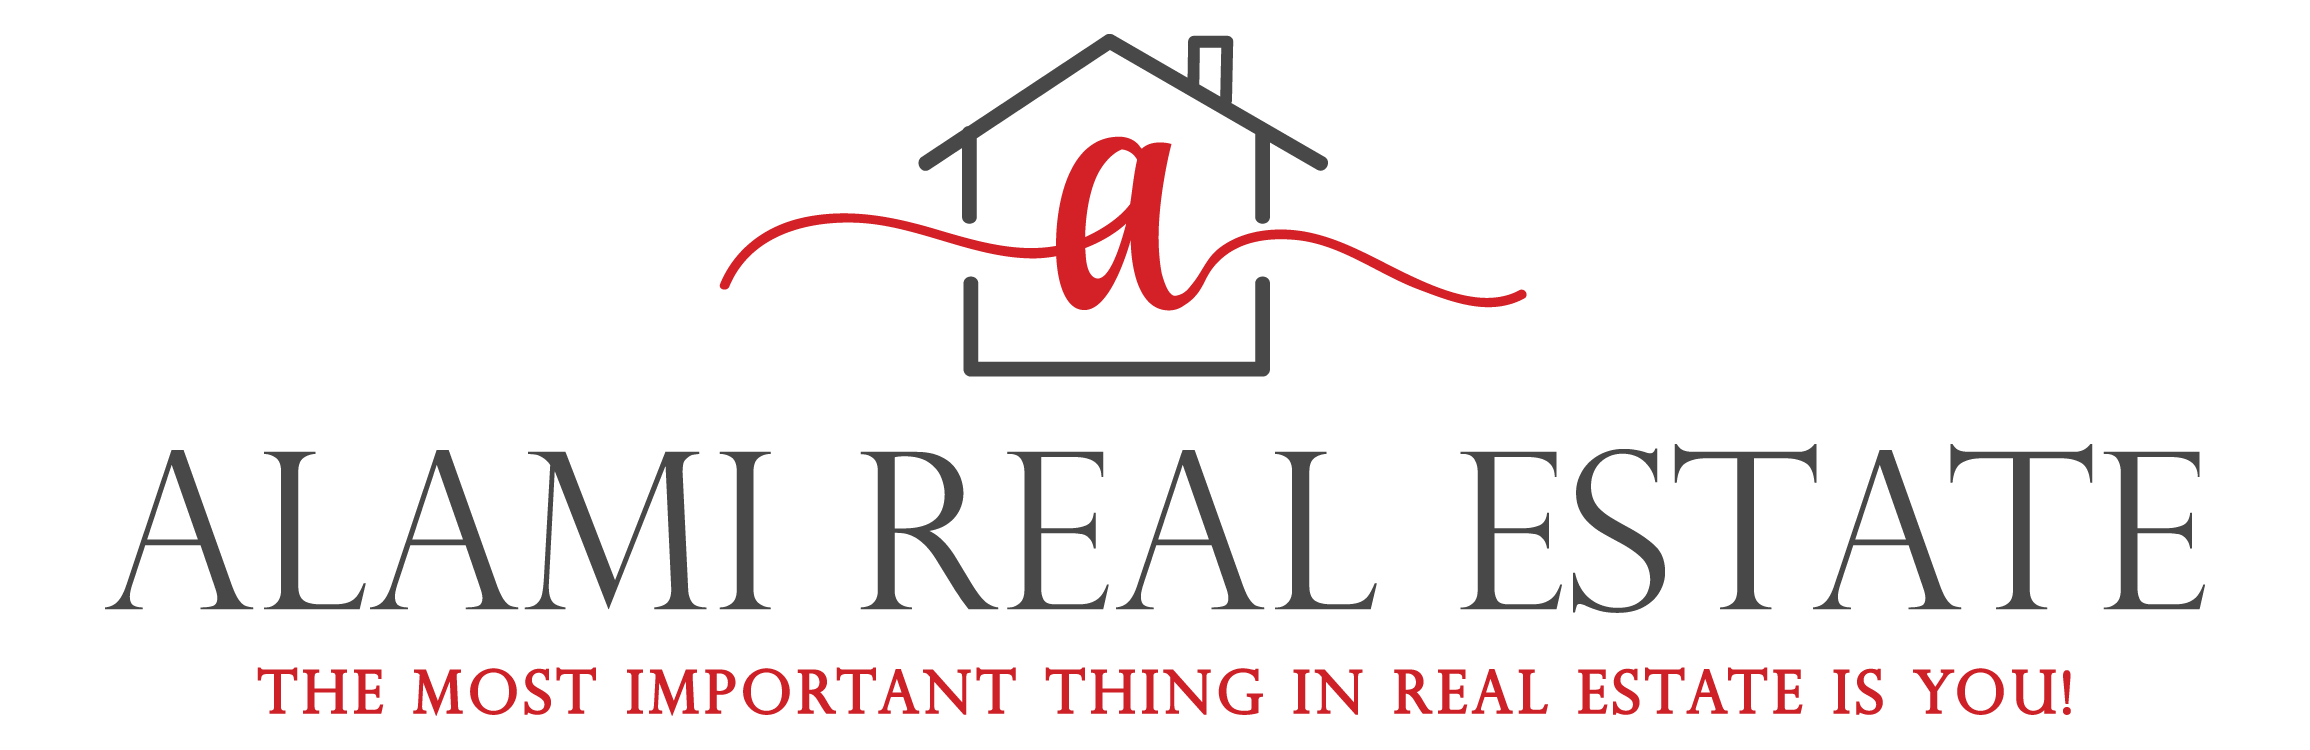 Alami Real Estate